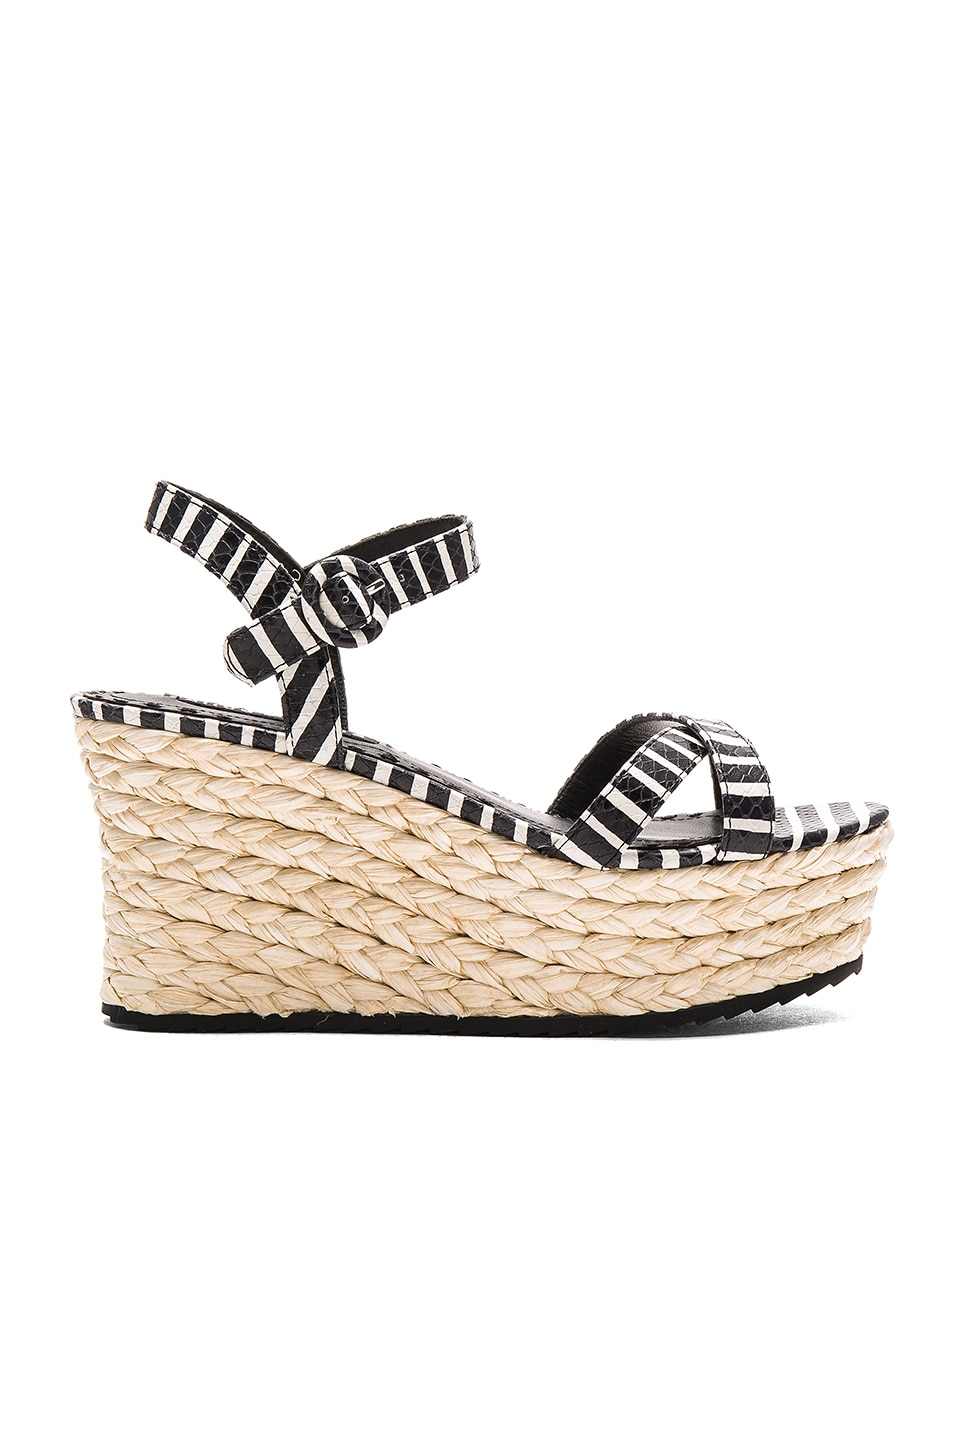 Alice + Olivia Rachel Wedge in Black & White Snake